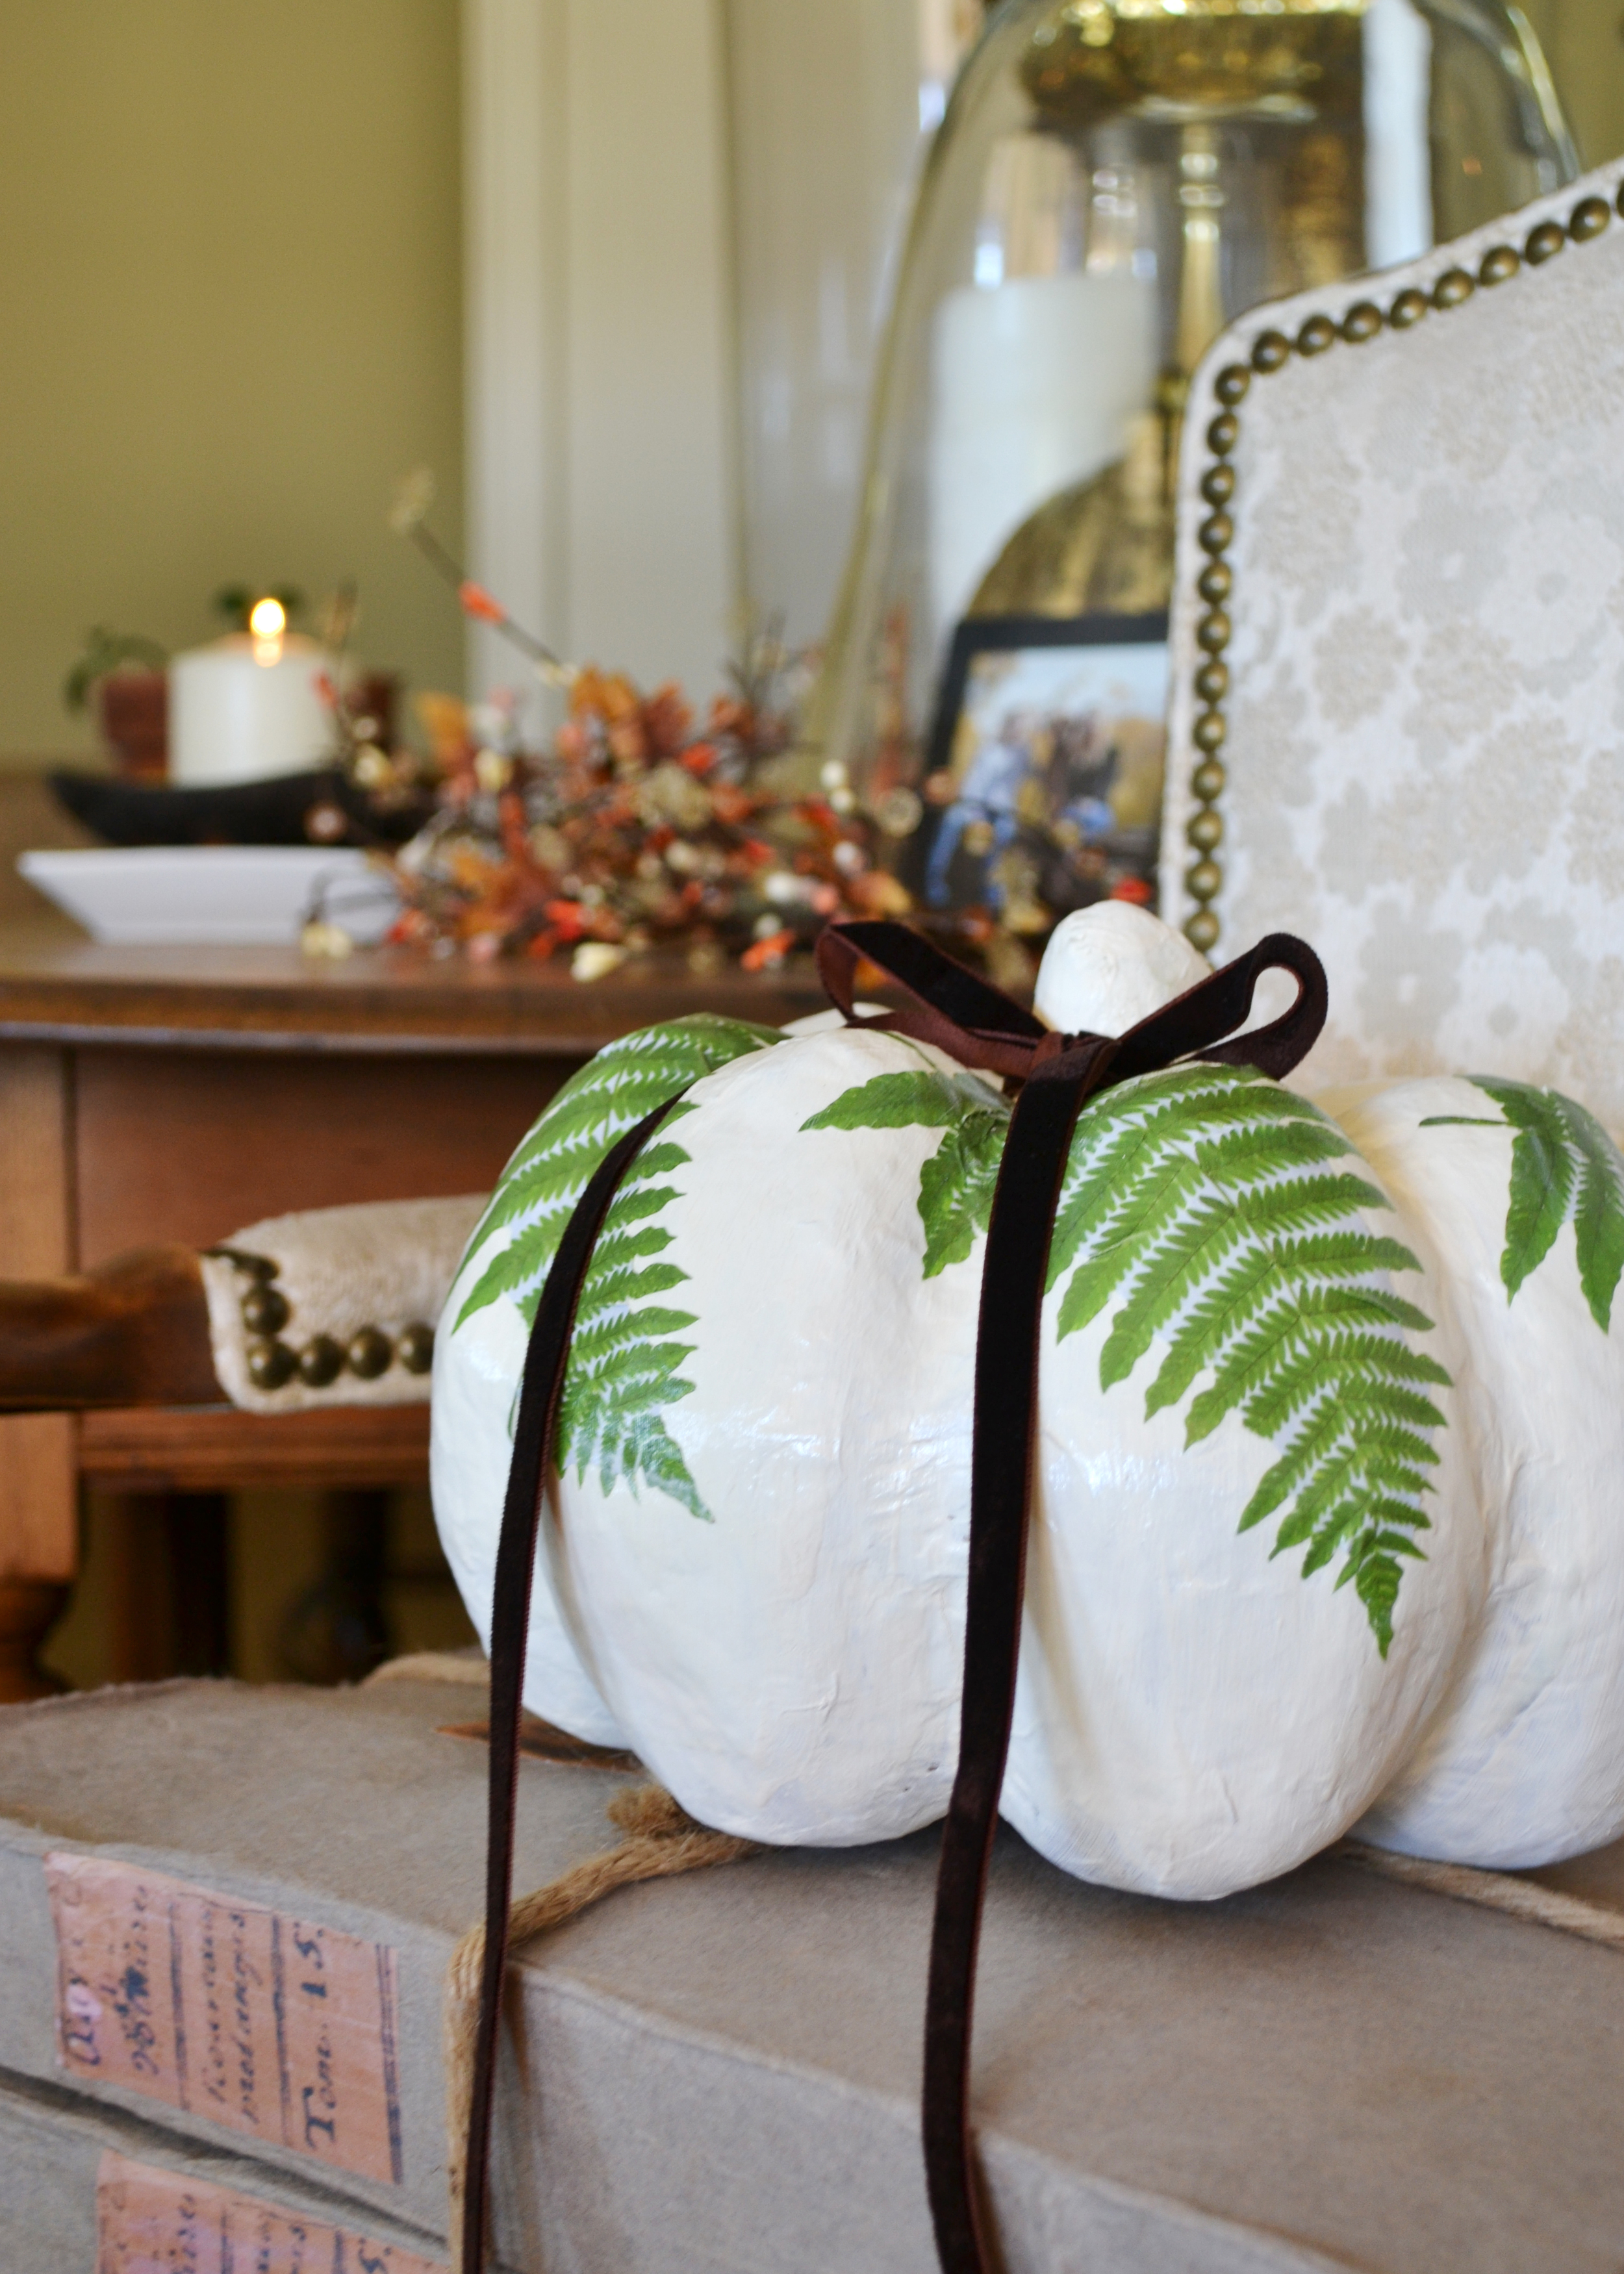 Use chalk paint on a paper mache pumpkin! From boxwoodavenue.com